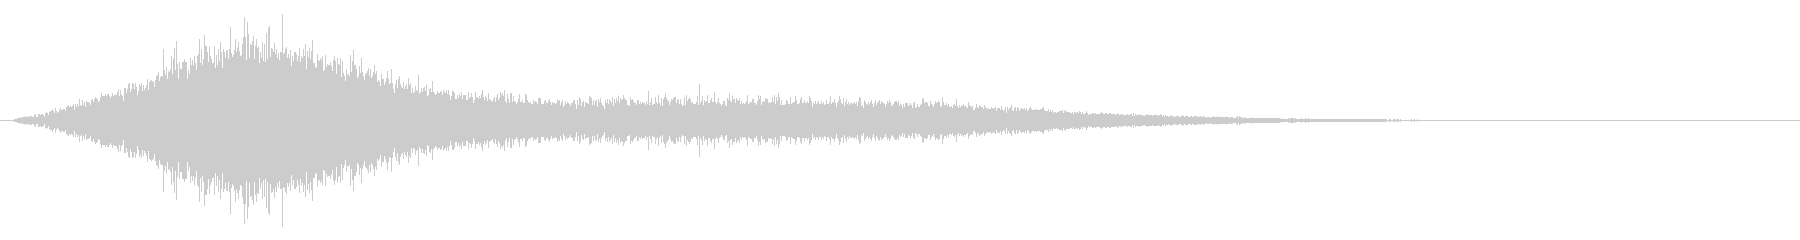 Sounds of chanting and activating magic #3's unreproduced waveform